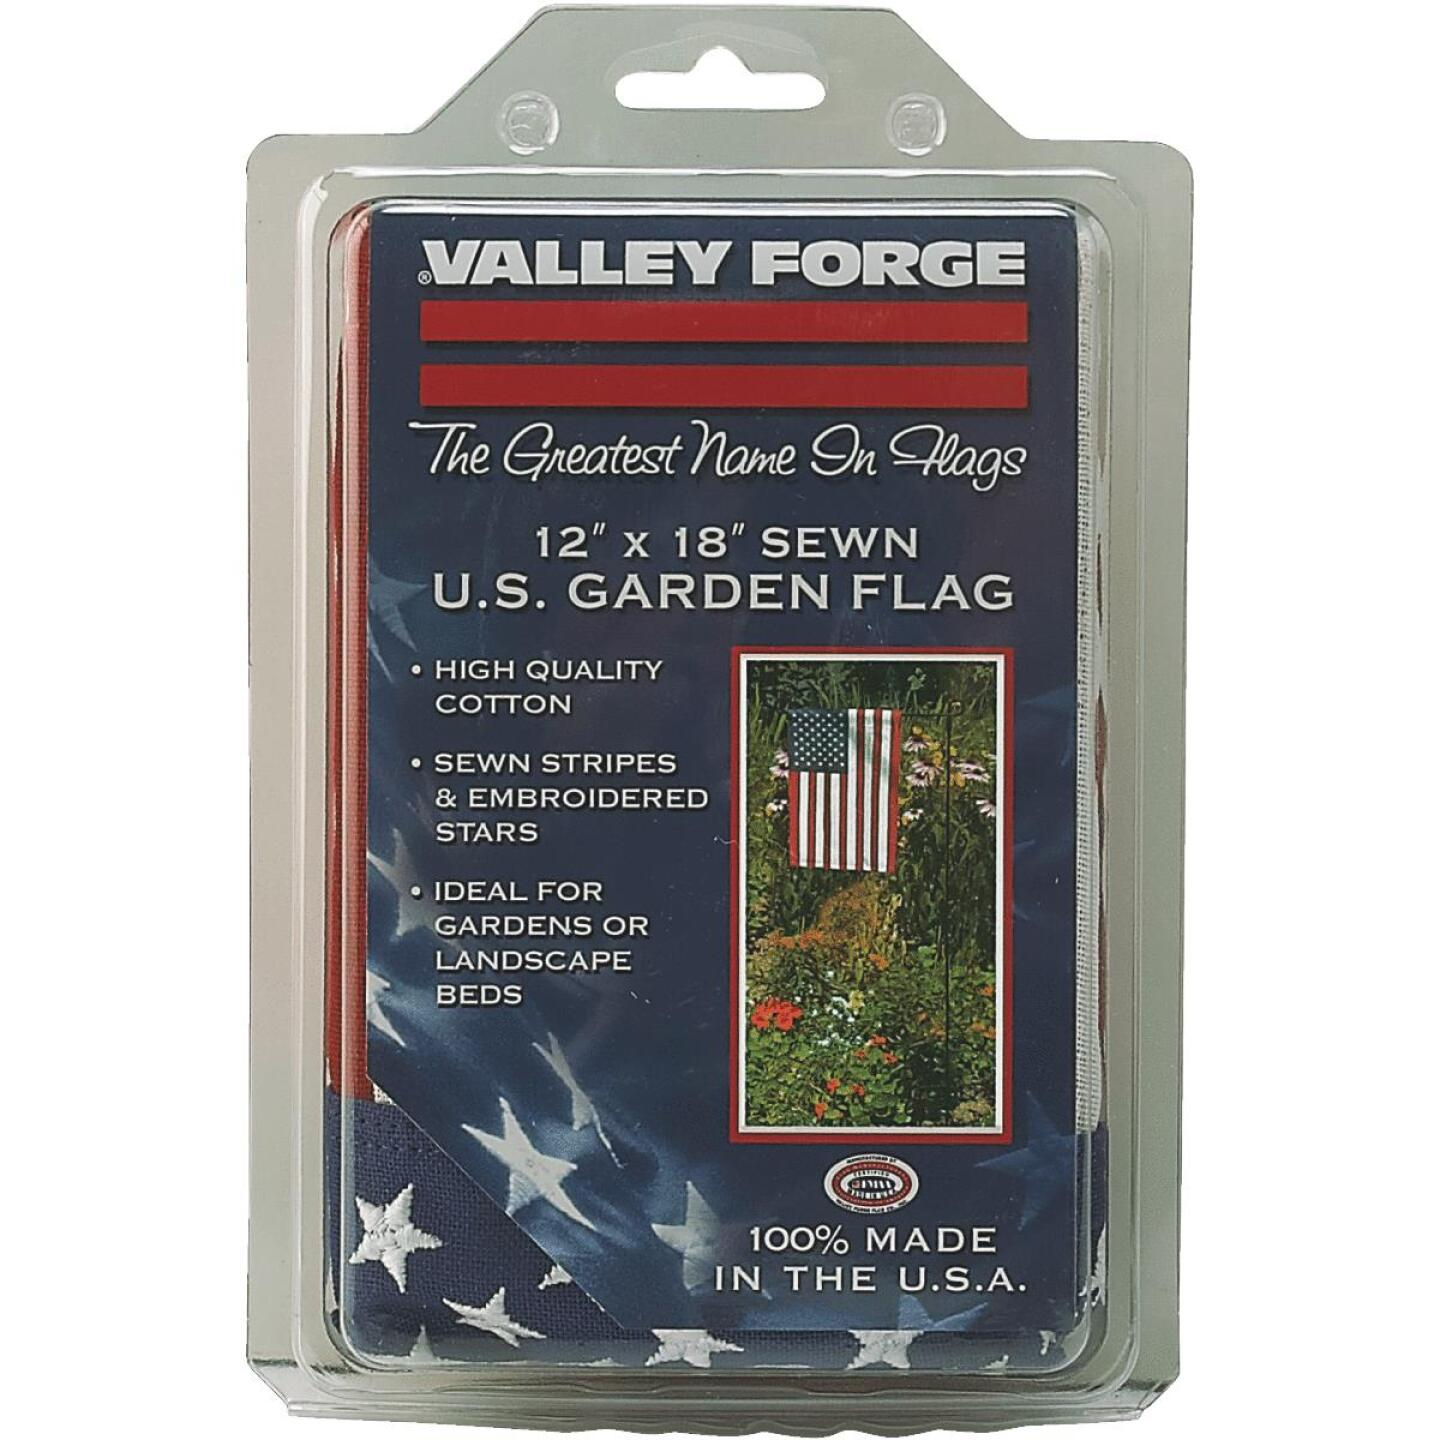 Valley Forge 1 Ft. x 1.5 Ft. Cotton Garden American Flag Image 4